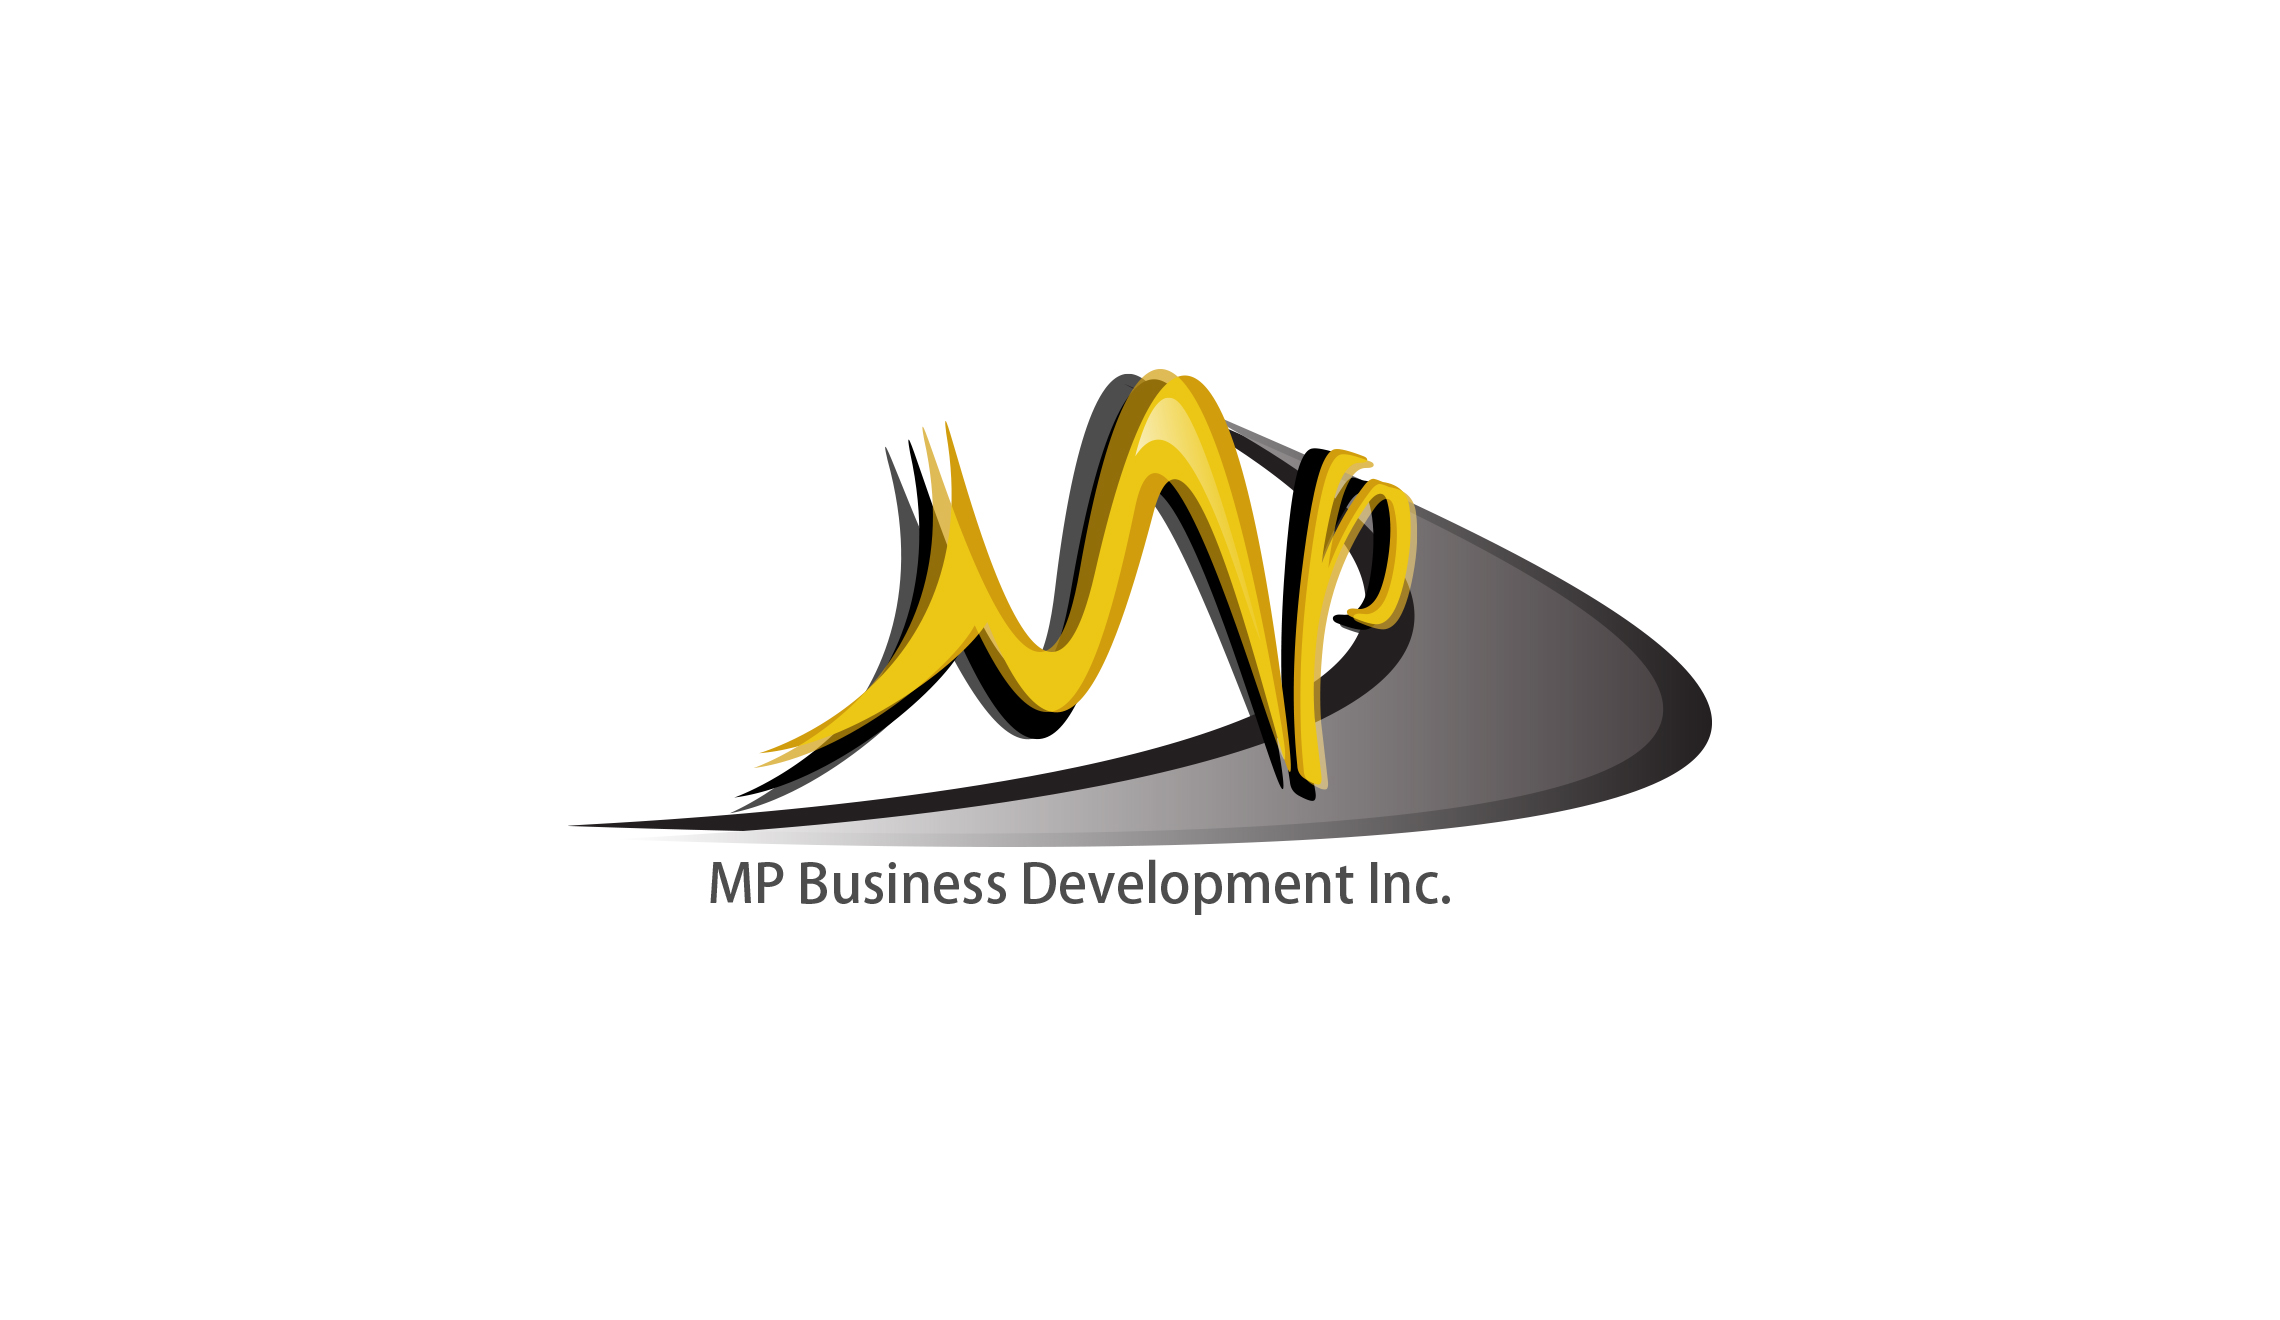 Logo Design by Leonard Anthony Alloso - Entry No. 212 in the Logo Design Contest MP Business Development Inc. Logo Design.